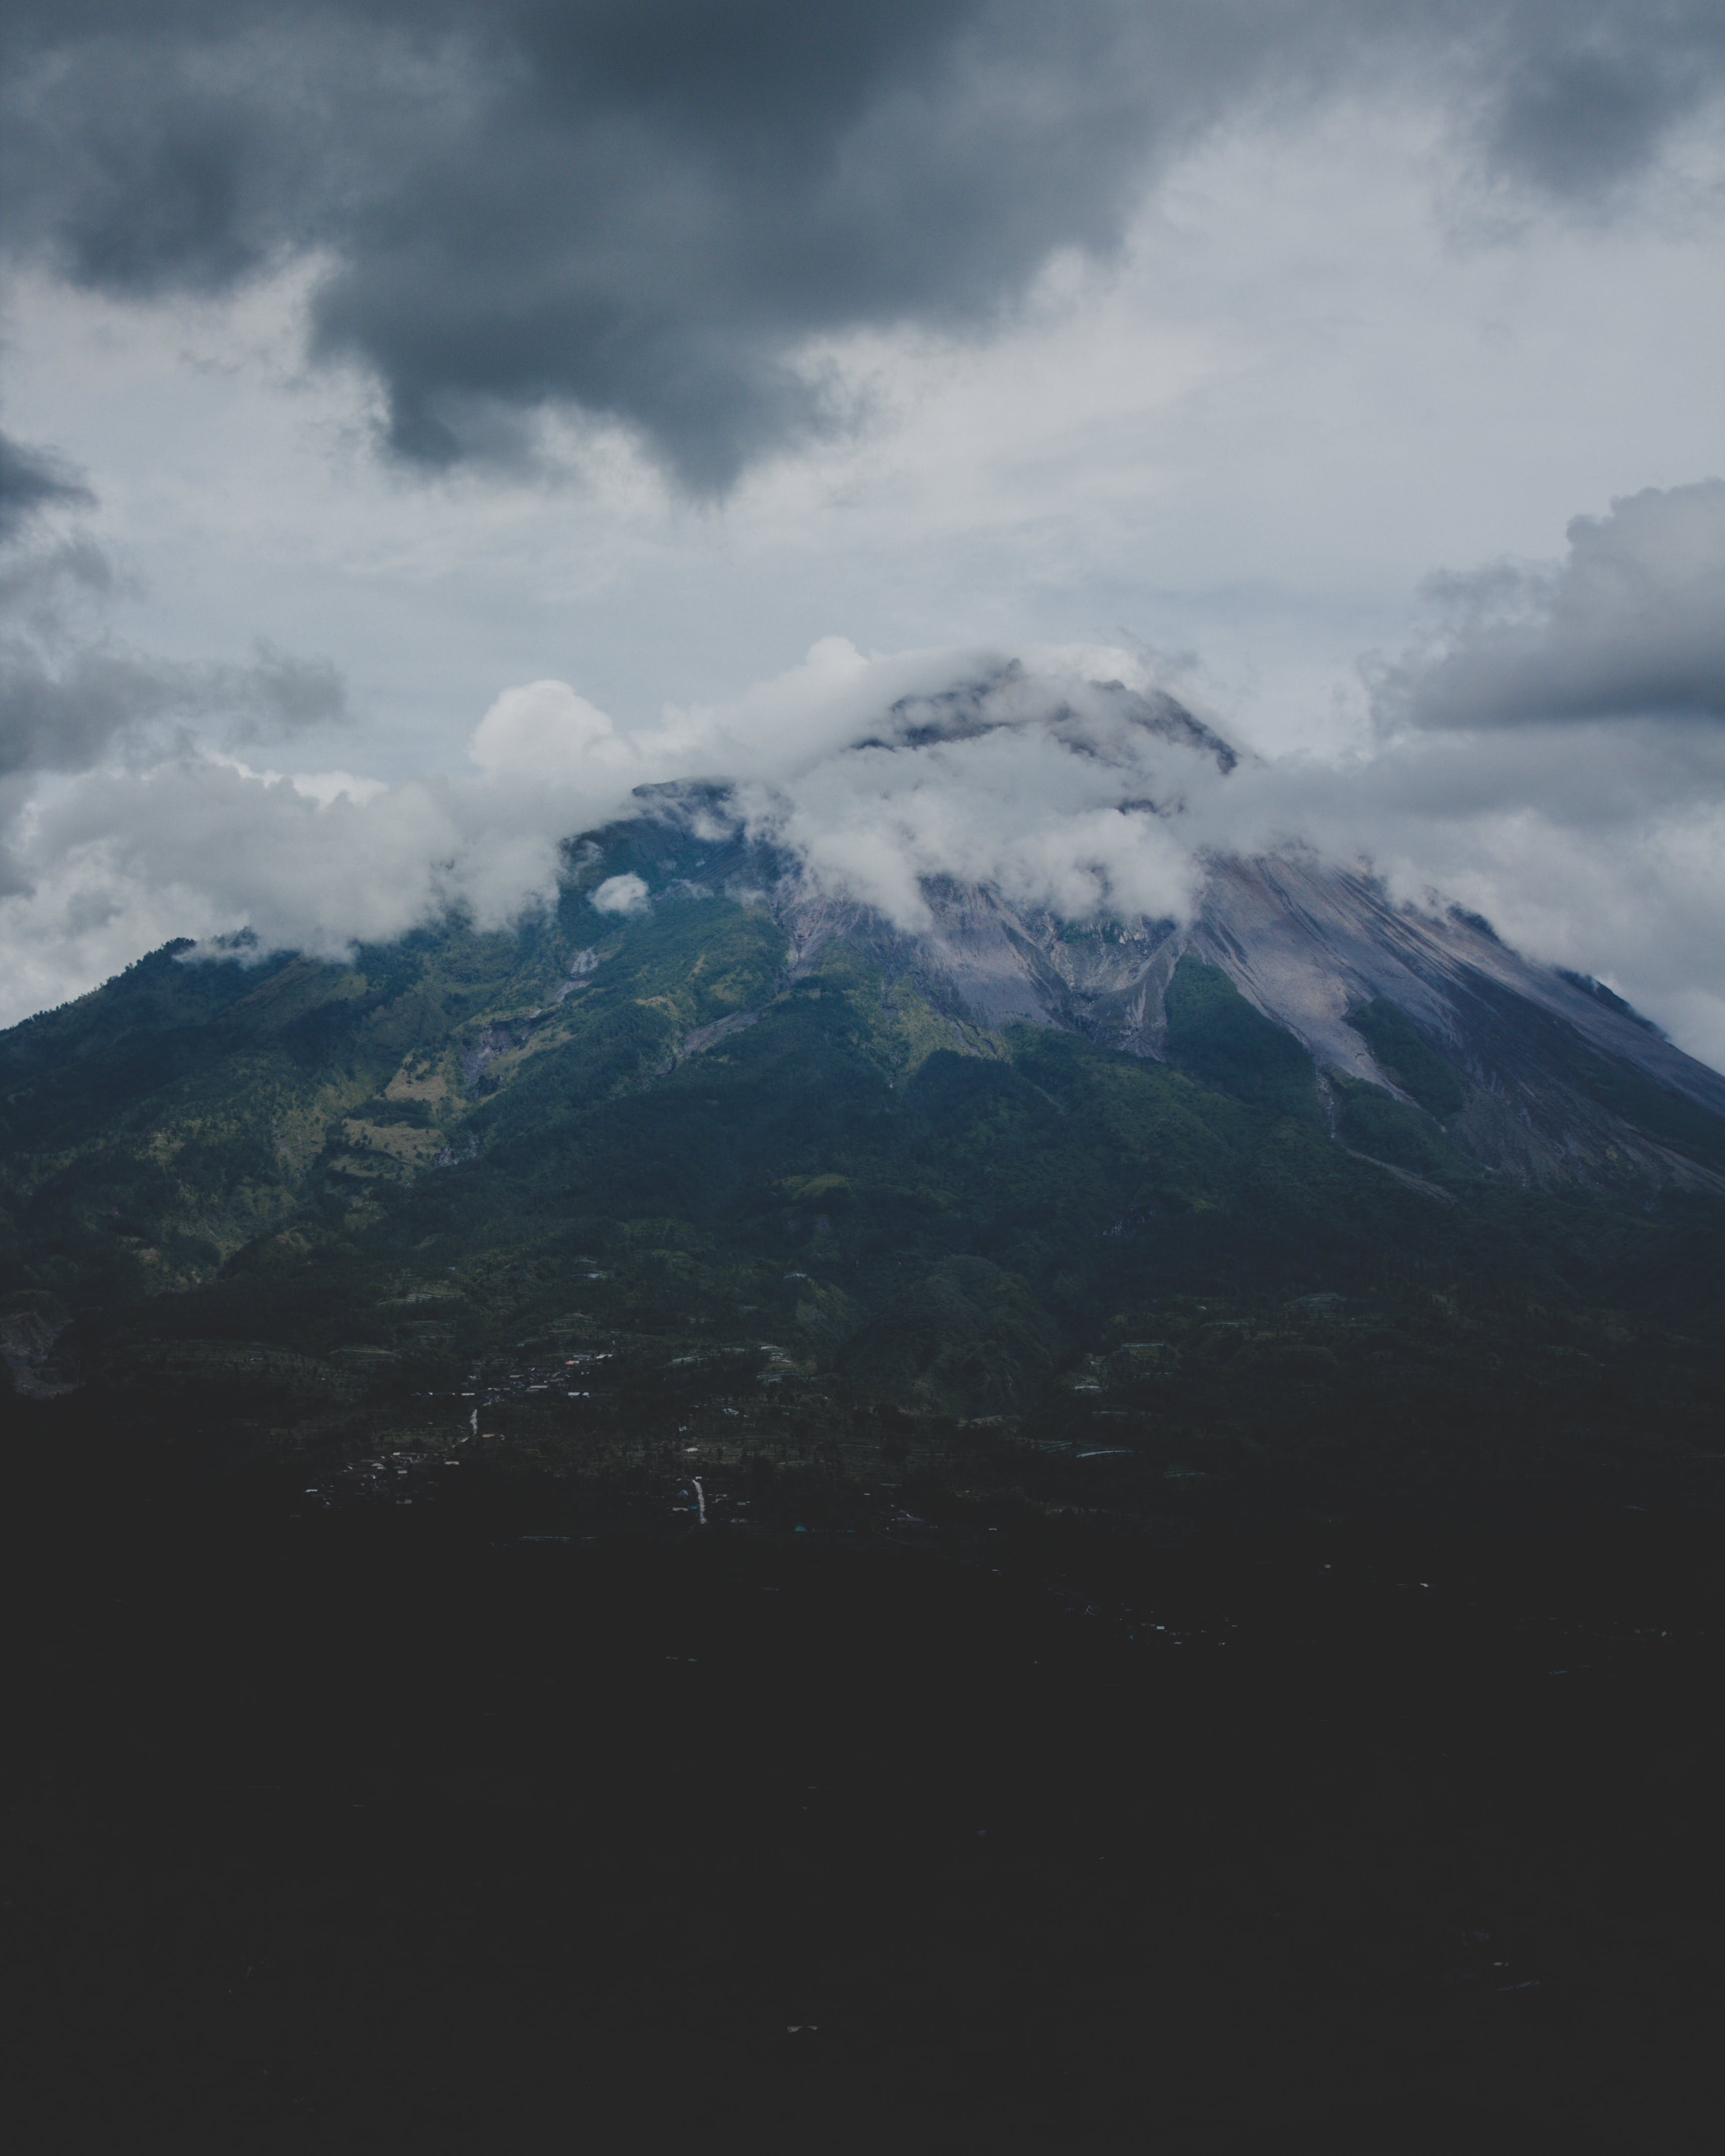 Free stock photo of blue mountains, cloudy, dark, mountain